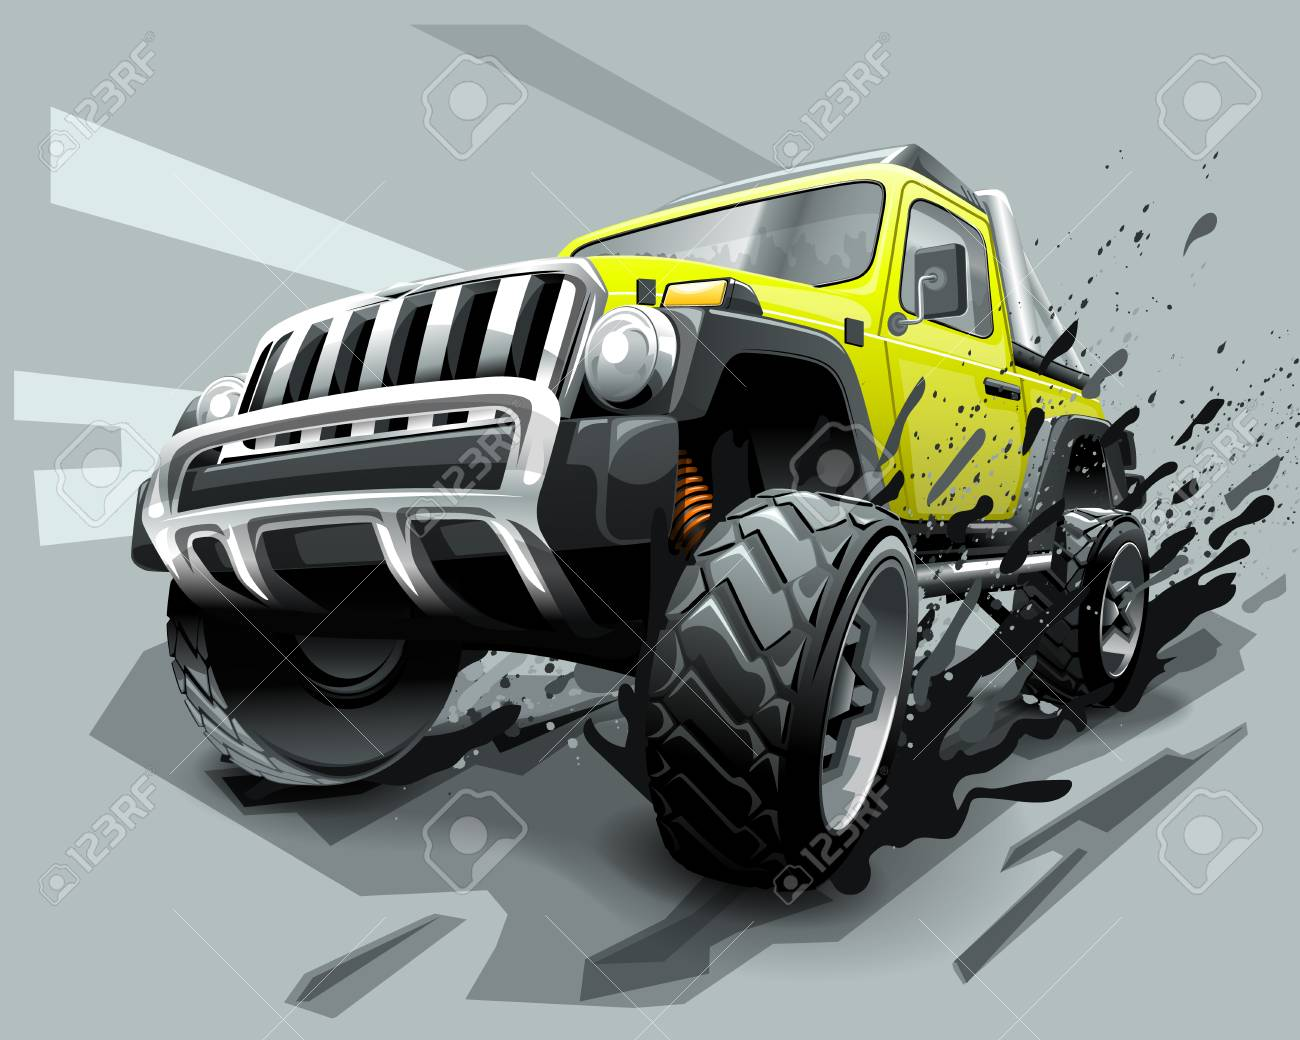 Extreme Off Road Vehicle SUV, dirt and bad weather - 105539251